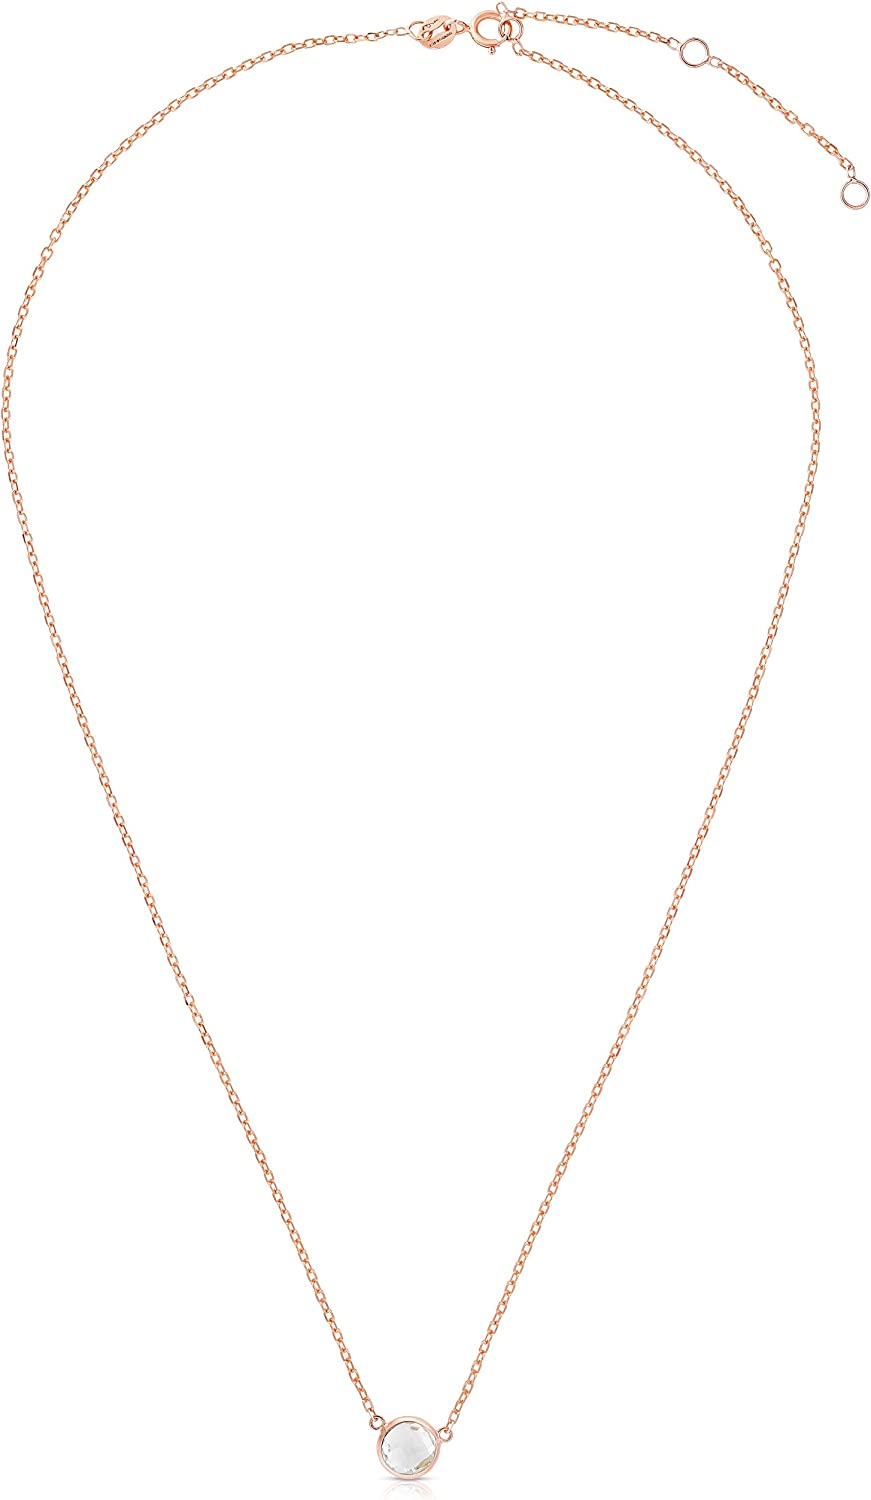 Courier shipping free Floreo 14k Yellow or Rose Sale item Pendant Gold Gemstone Solitaire Round